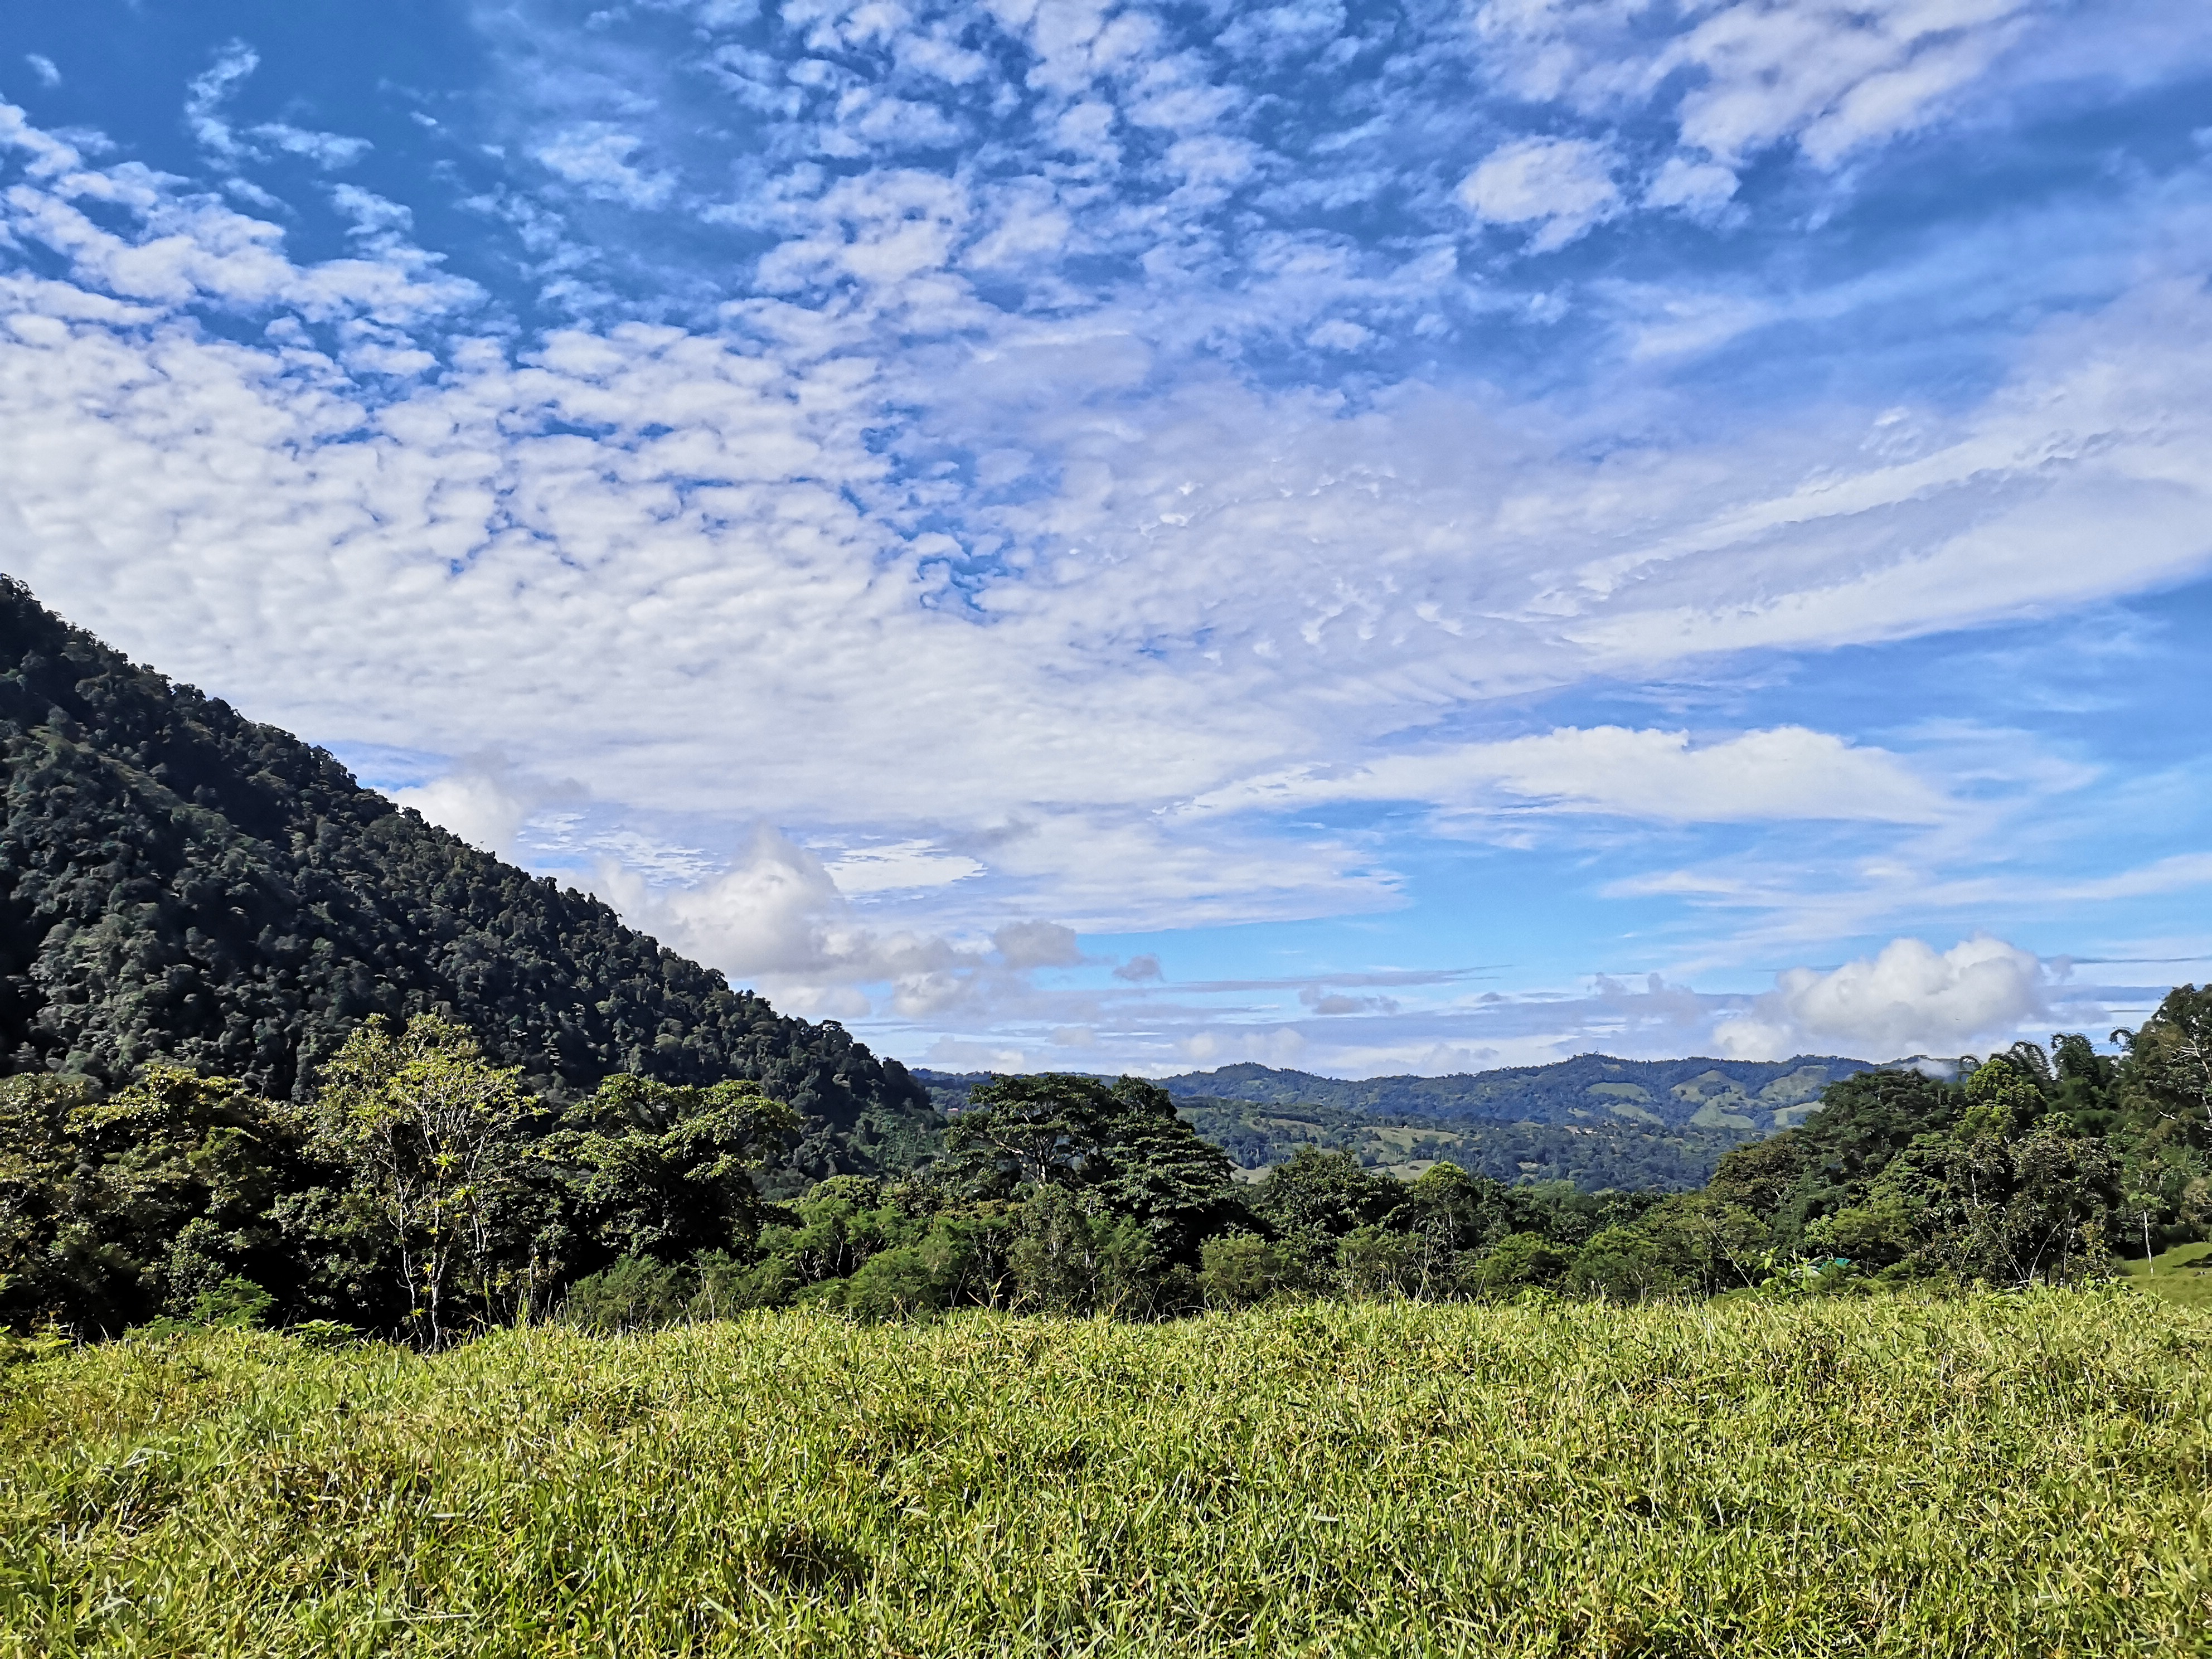 Property ideal for development with 3 creeks in Las Tumbas, Baru